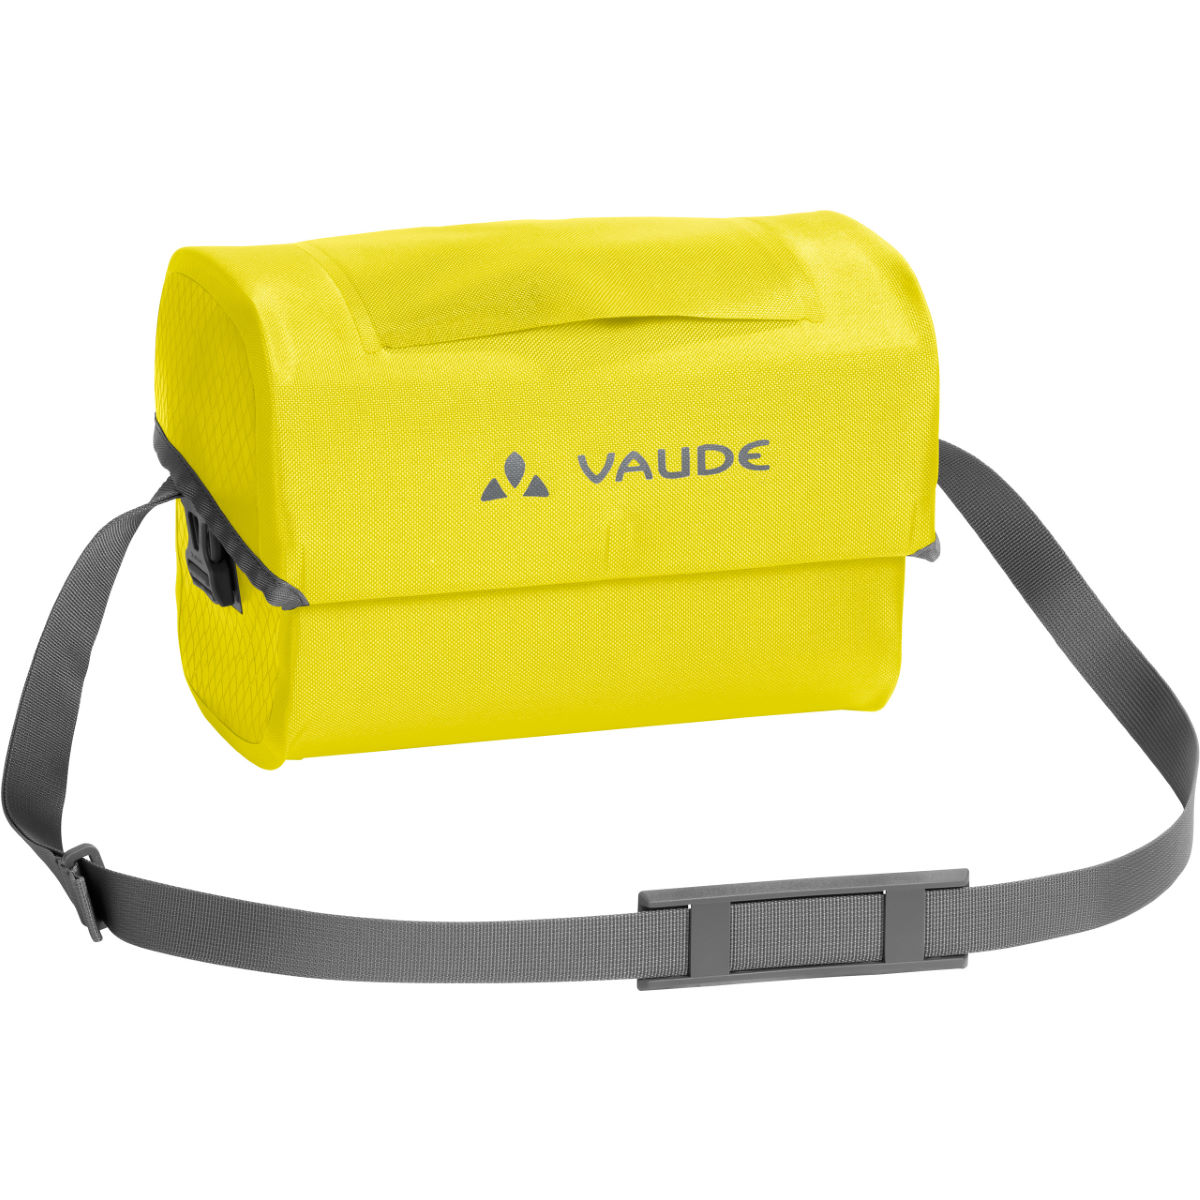 Sacoche Vaude Aqua Box - One Size Canary Sacoches de cintre